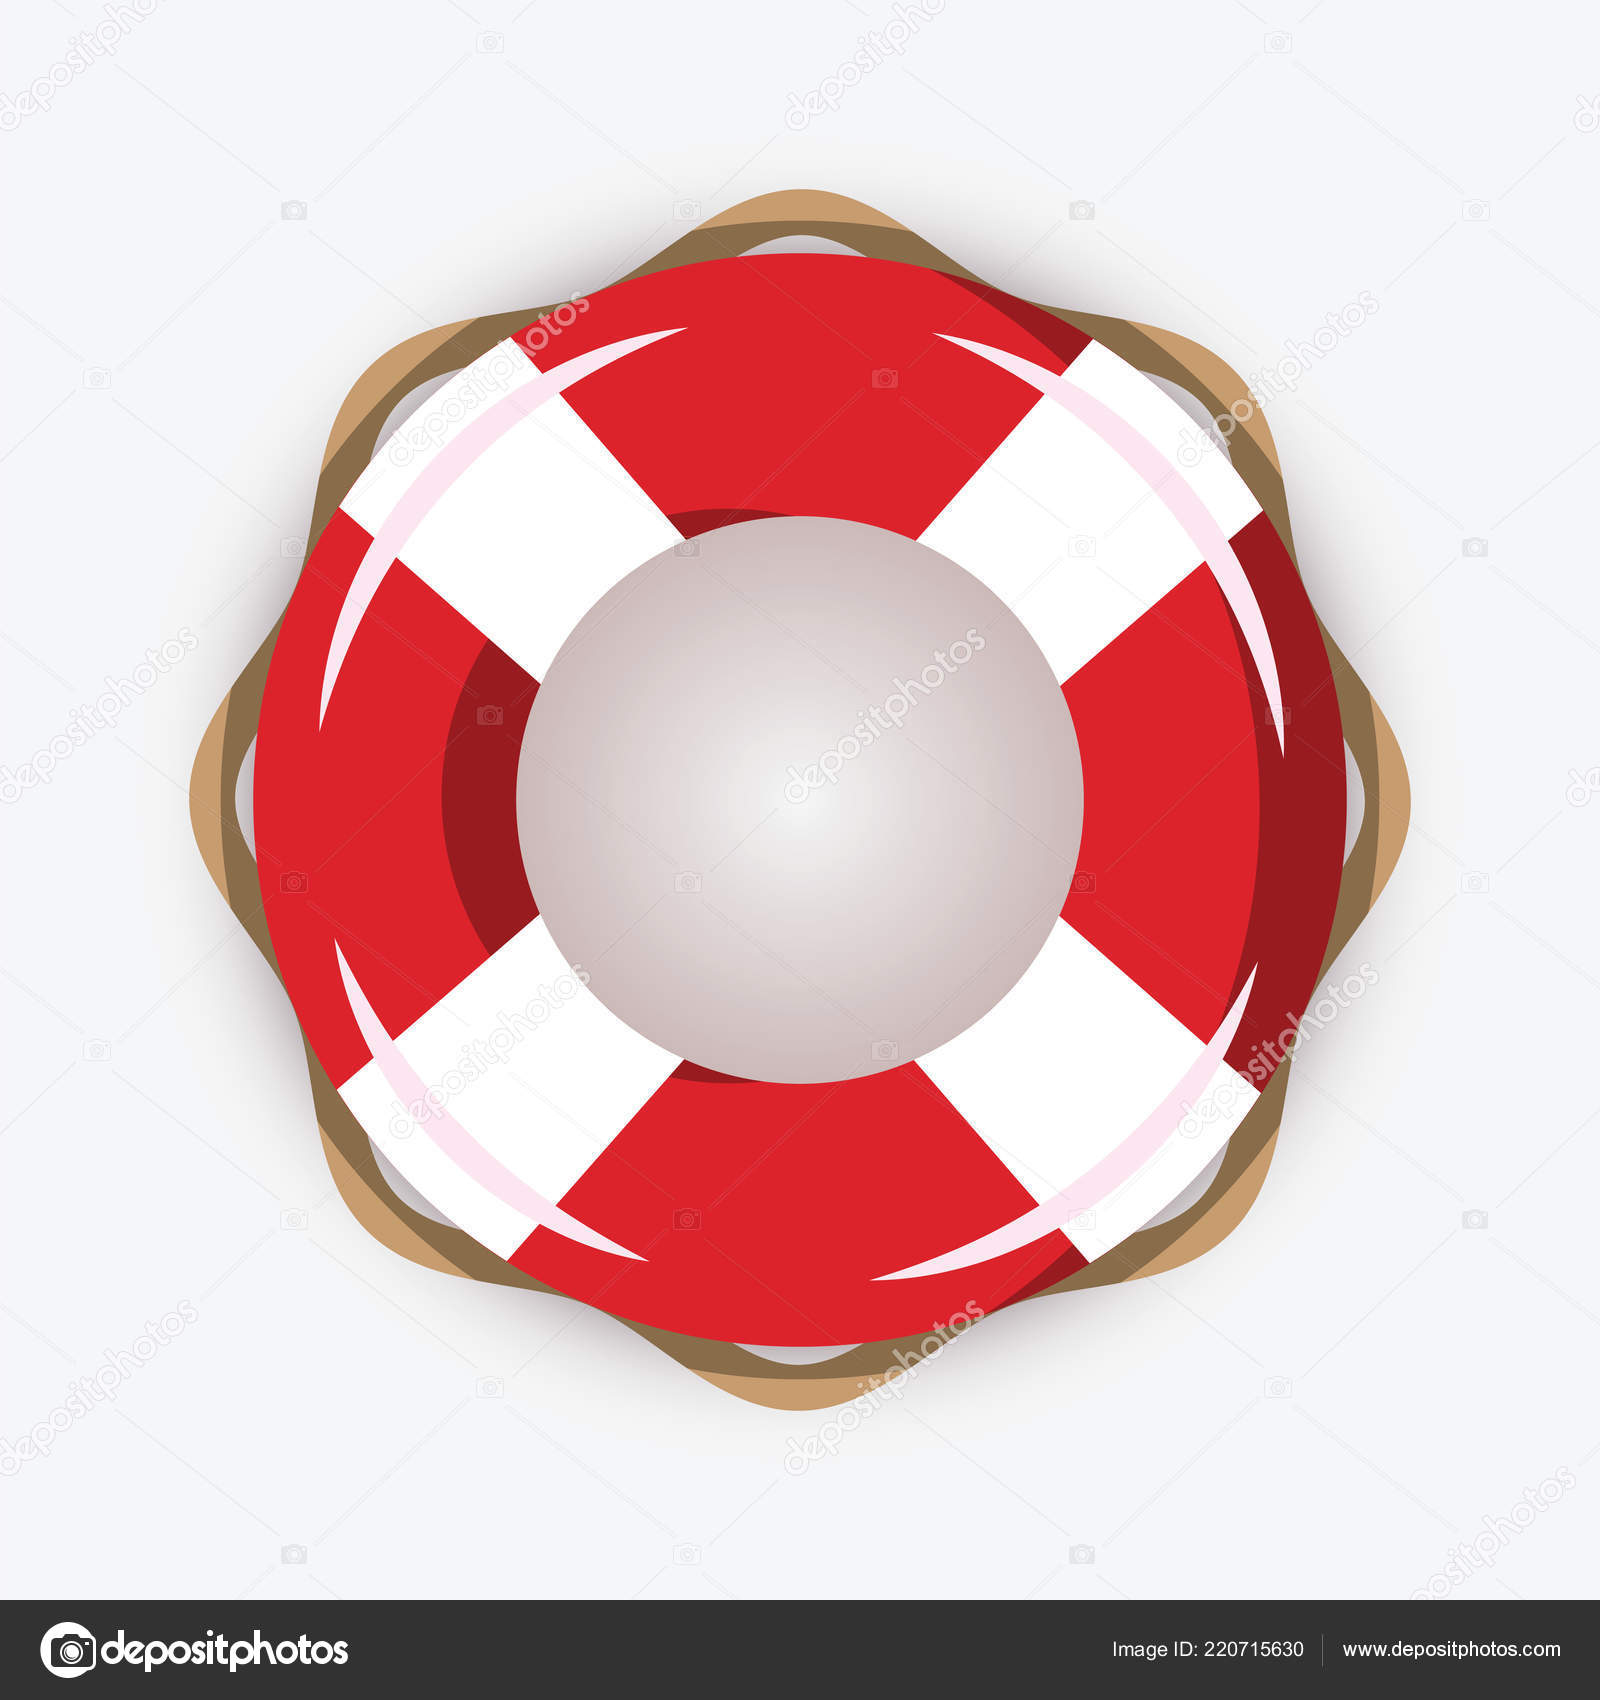 a991ba2b79c Life buoy isolated on white background. Red and white lifebuoy with stripes  for sos emergency